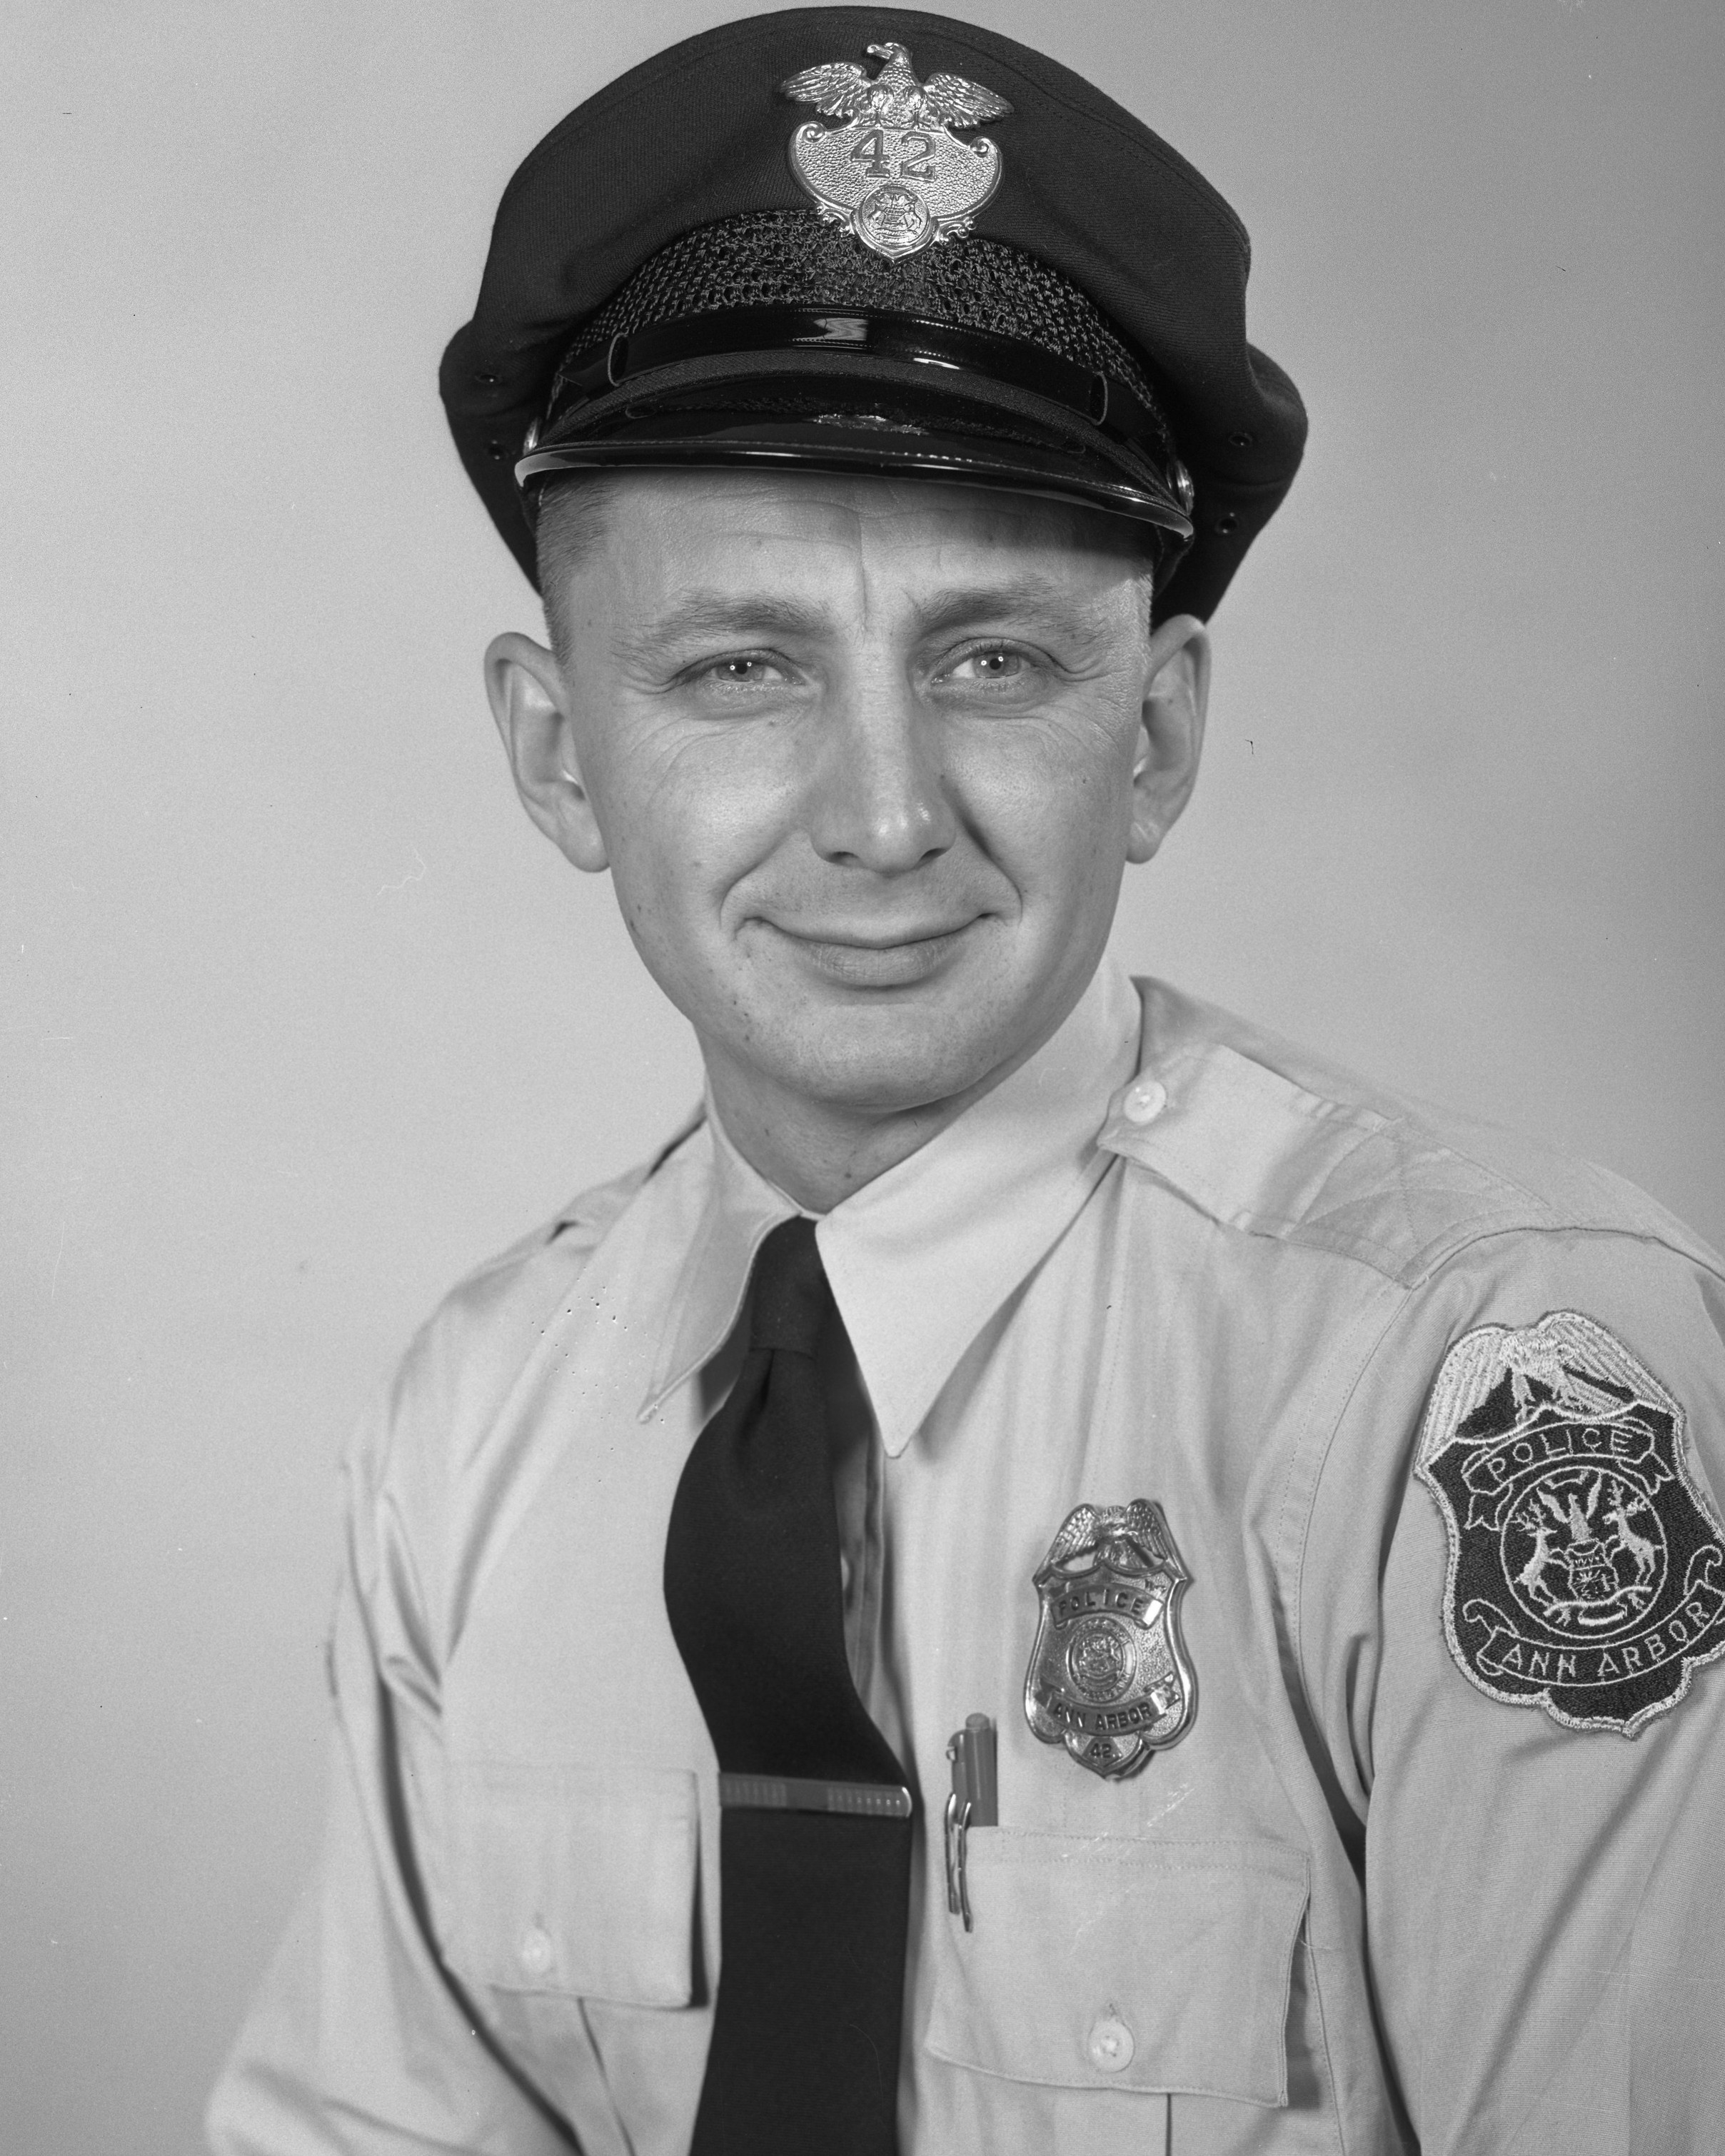 Patrolman Leonard William Alber | Ann Arbor Police Department, Michigan